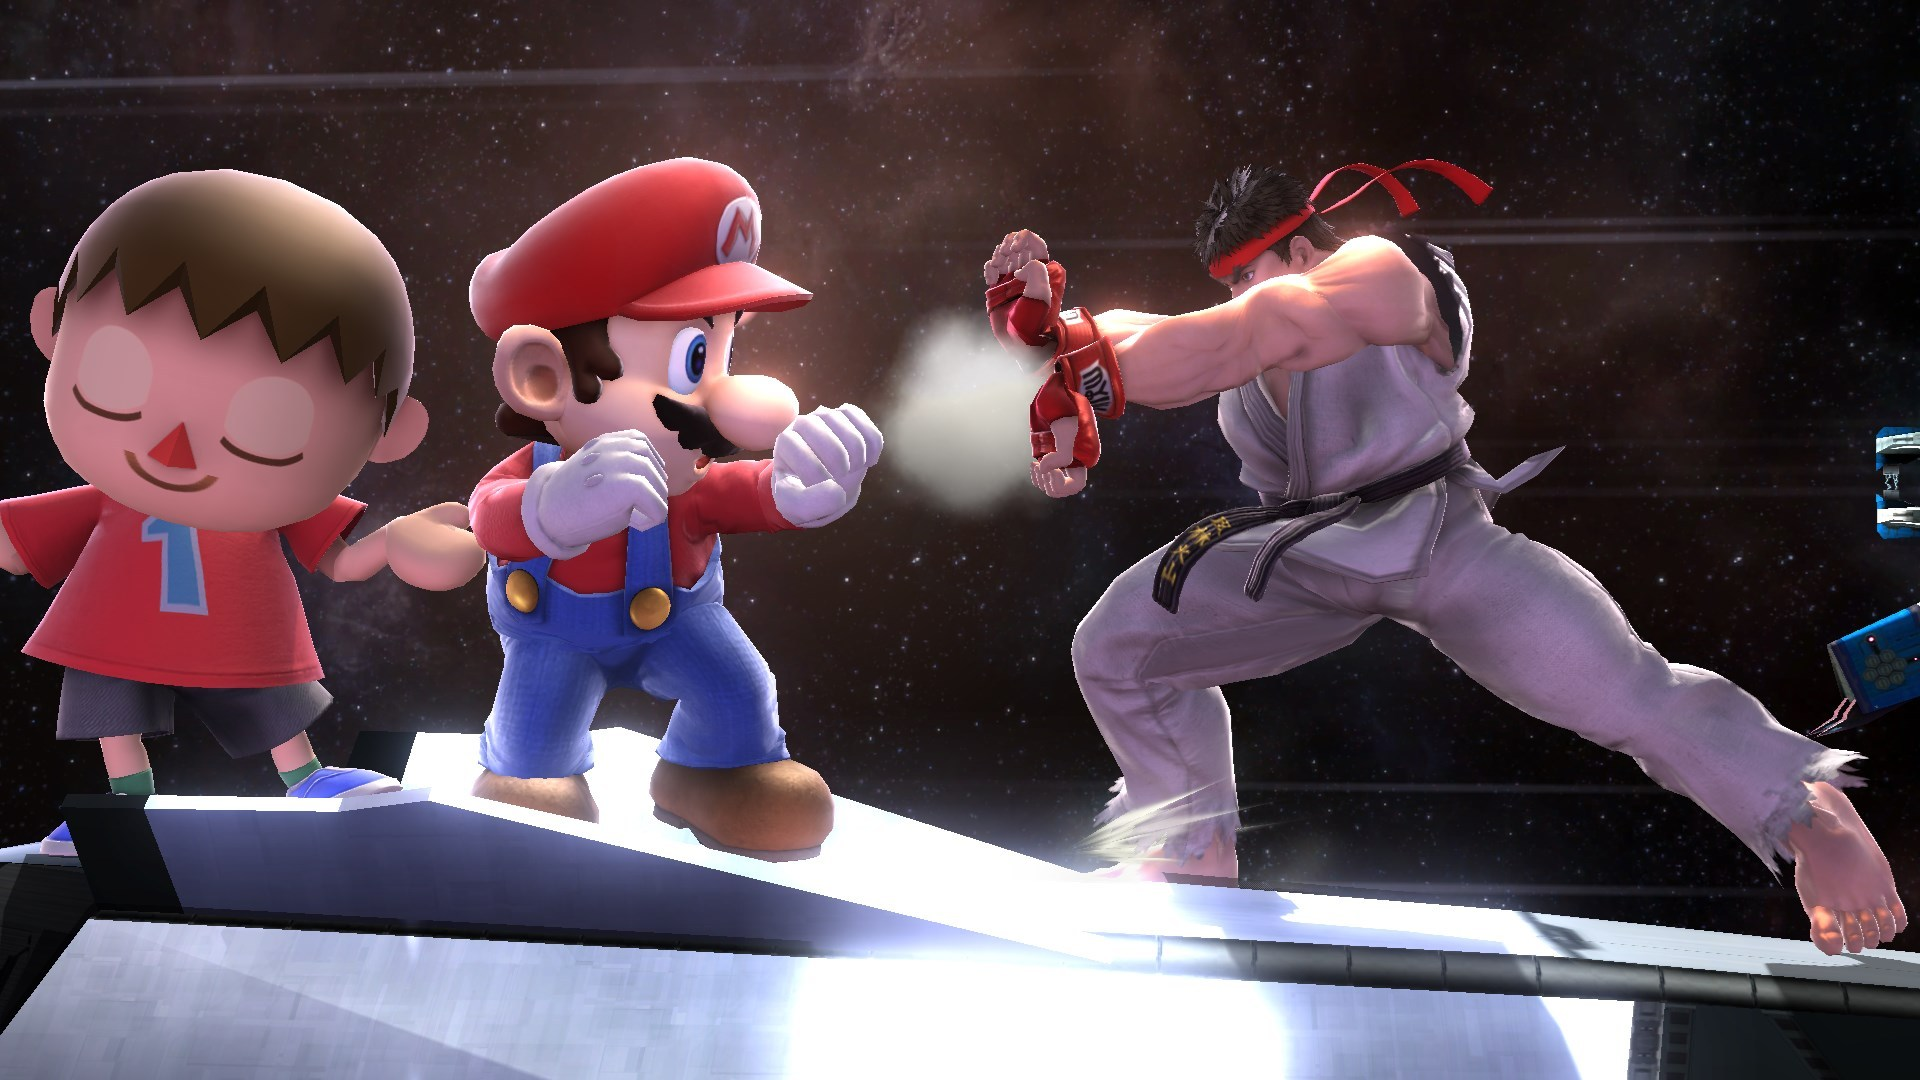 watch-the-gt-x-wii-u-doubles-pools-right-here-social.jpg